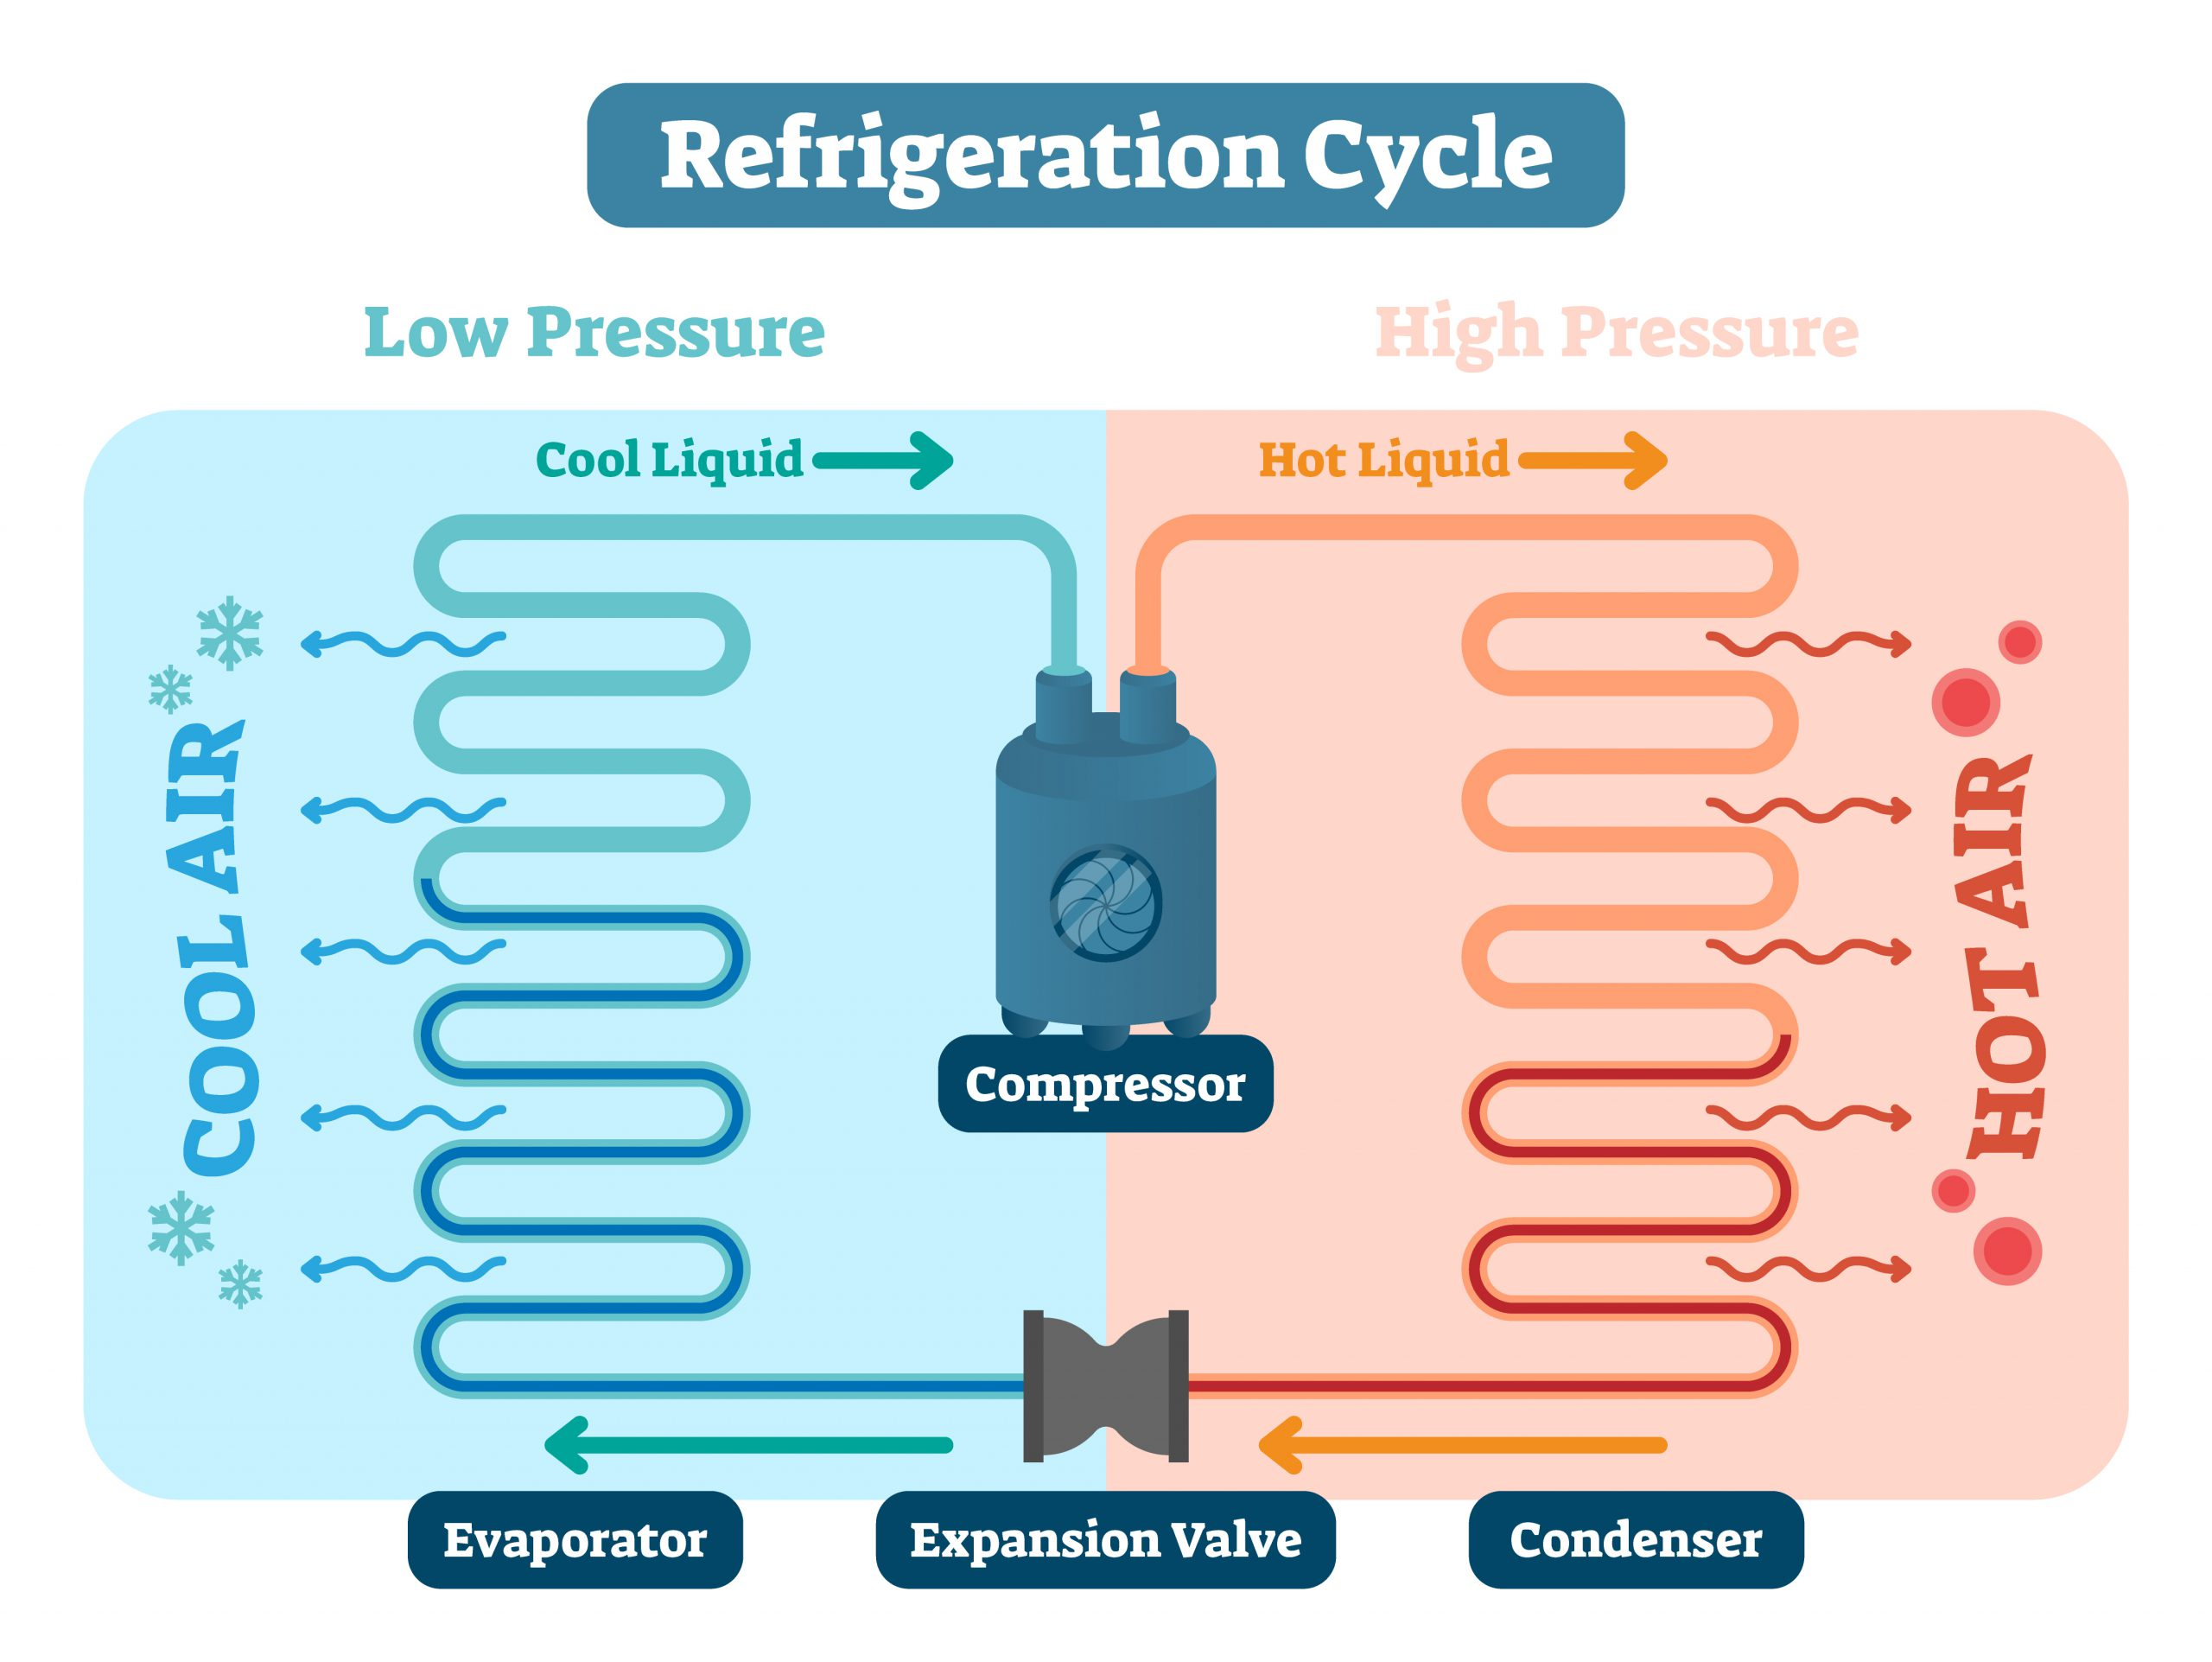 Refrigeration cycle vector illustration. Scheme with Low and high pressure, cool and hot liquid, air compressor, evaporator, expansion valve and condenser. Physics basics and temperature diagram.